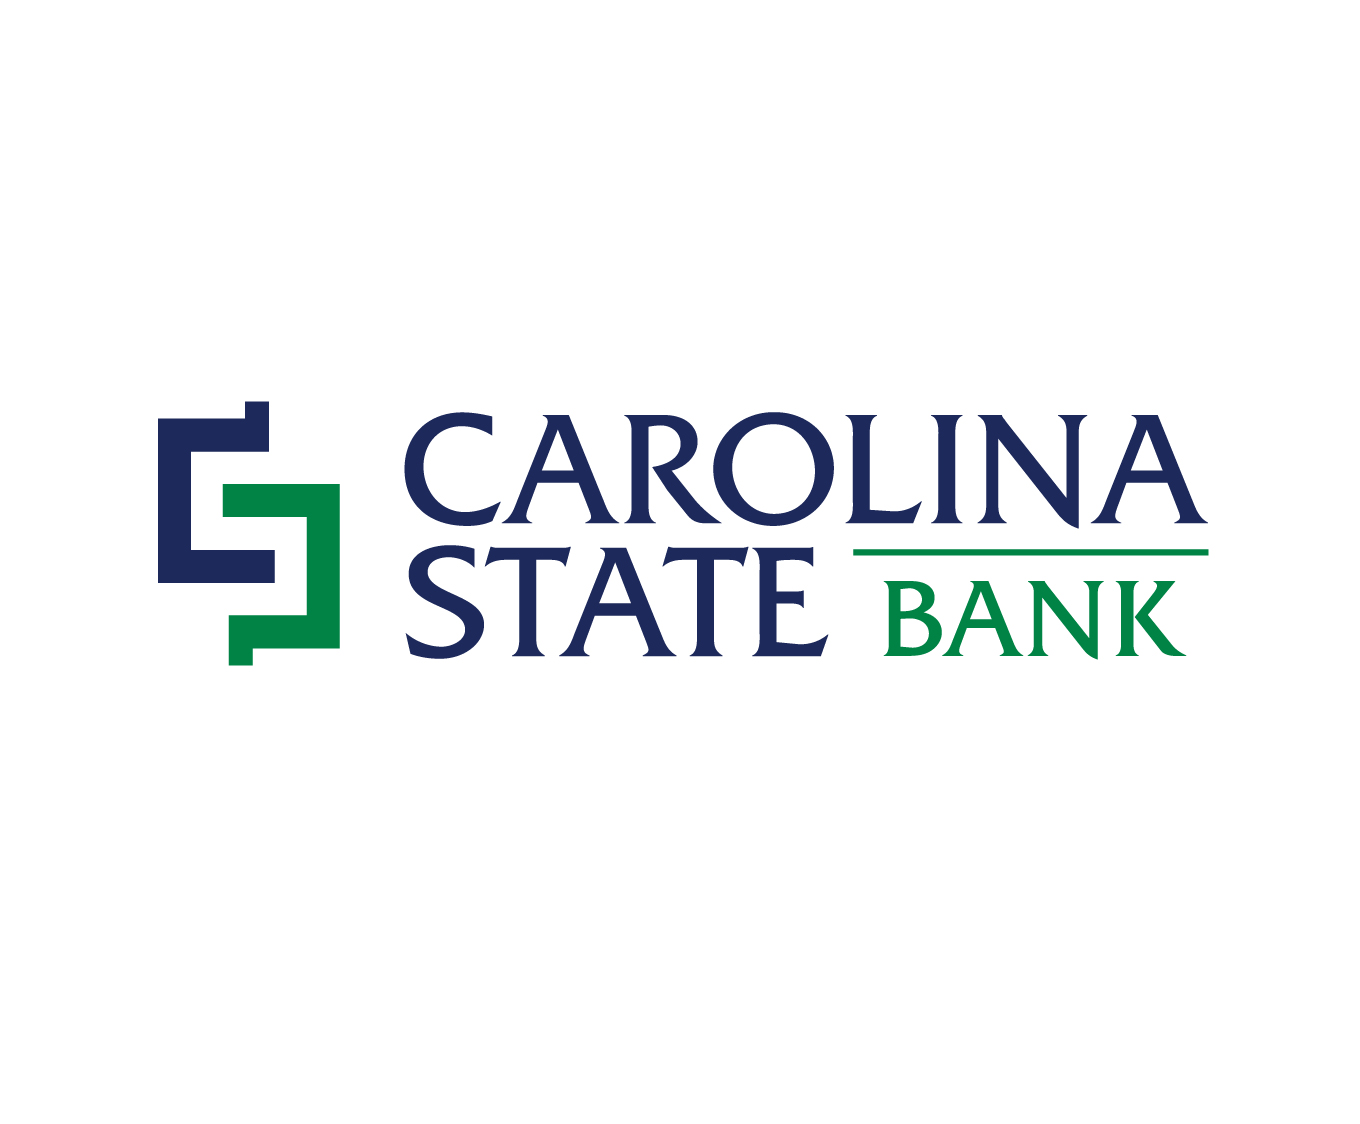 Carolina State Bank Logo Development